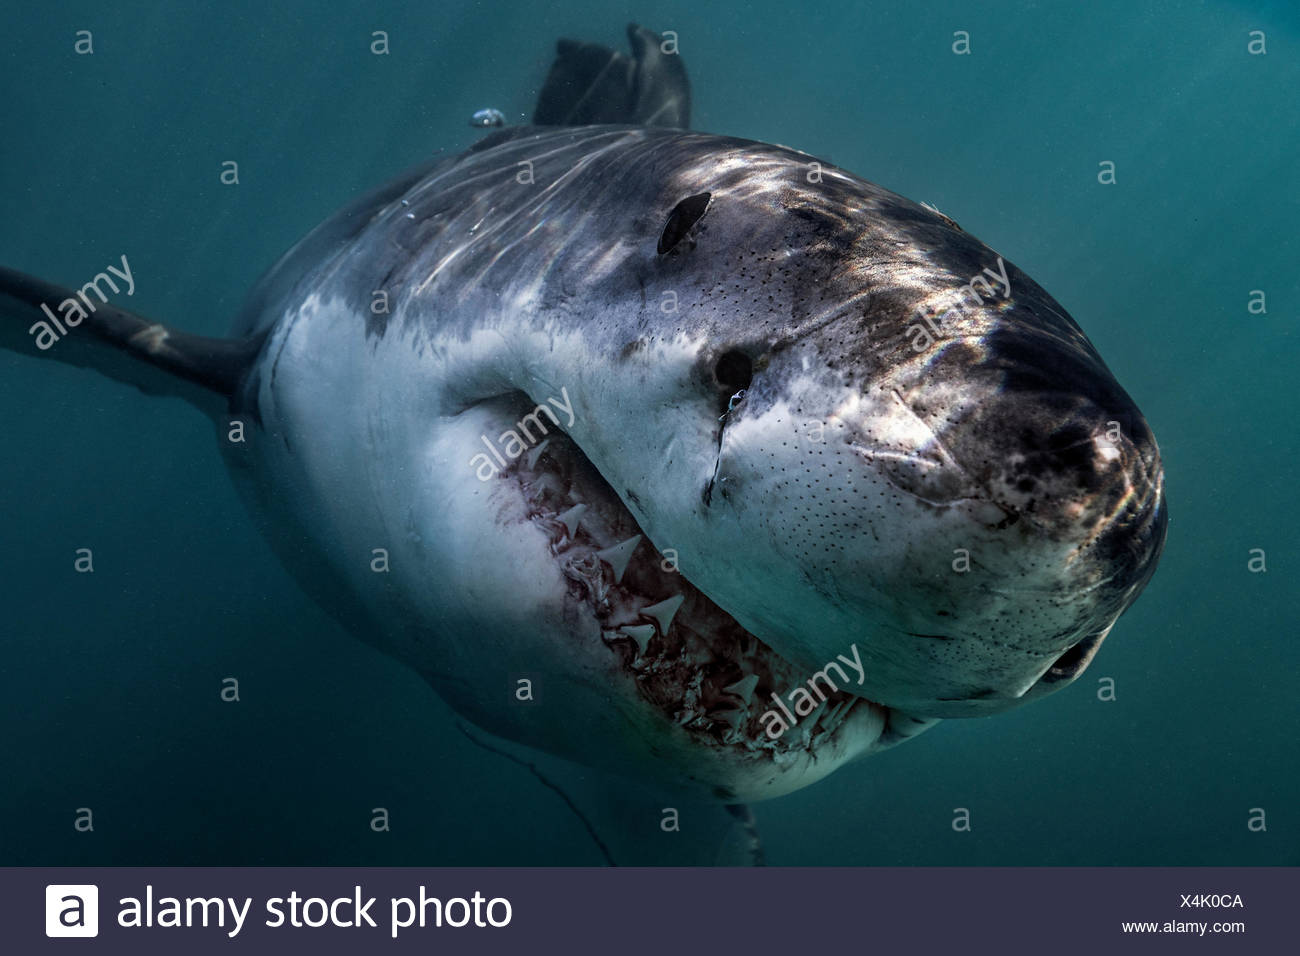 Great White Shark (Carcharodon Carcharias) swimming directly at camera, Gansbaai, South Africa - Stock Image